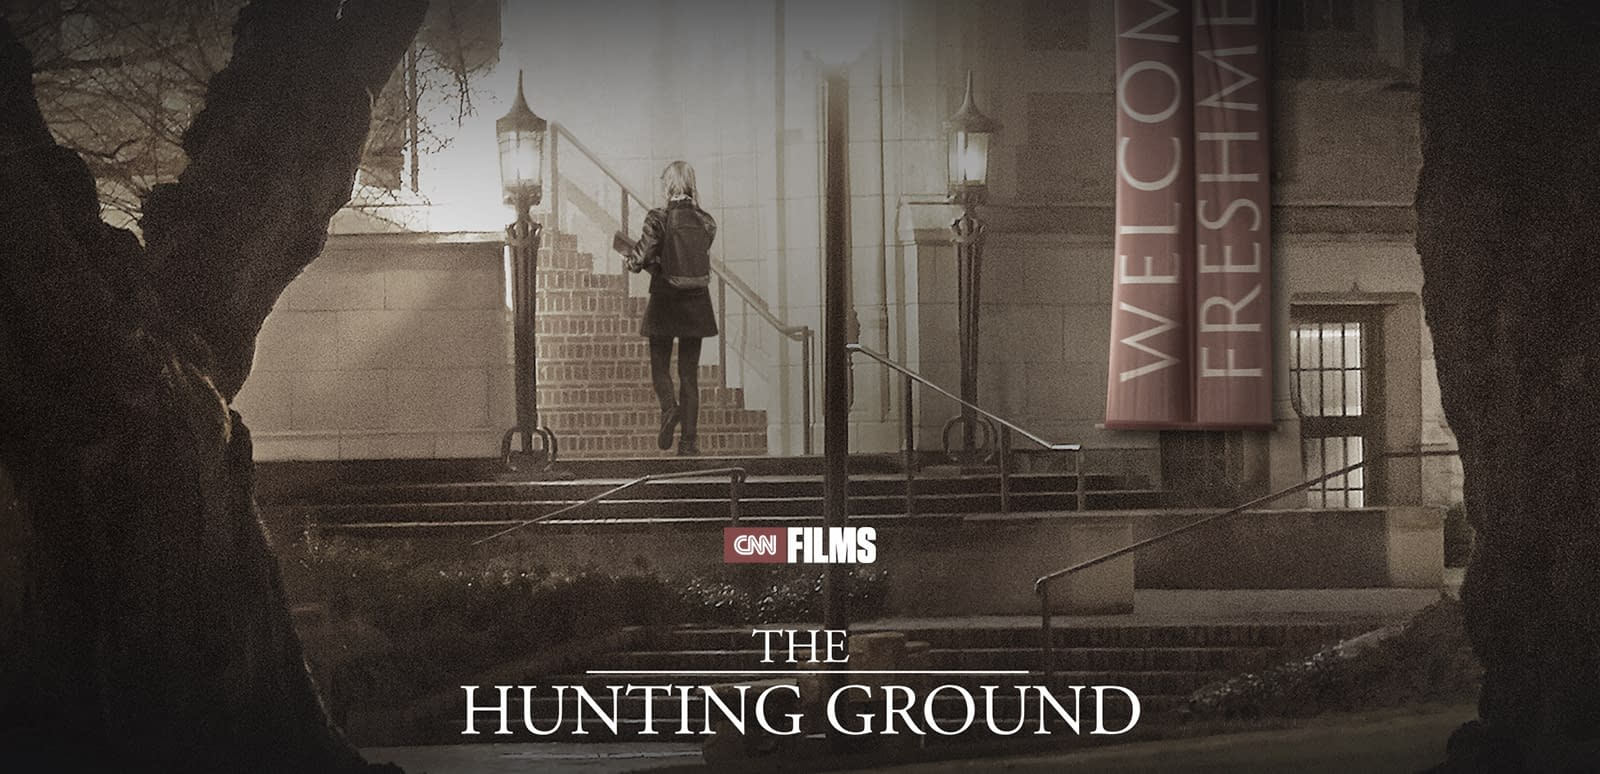 CNN Films: The Hunting Ground – TFNLG Attorney Douglas Fierberg Adds to the Film Over 20 Years of Litigation Experience of Fighting Against Campus Sexual Assault